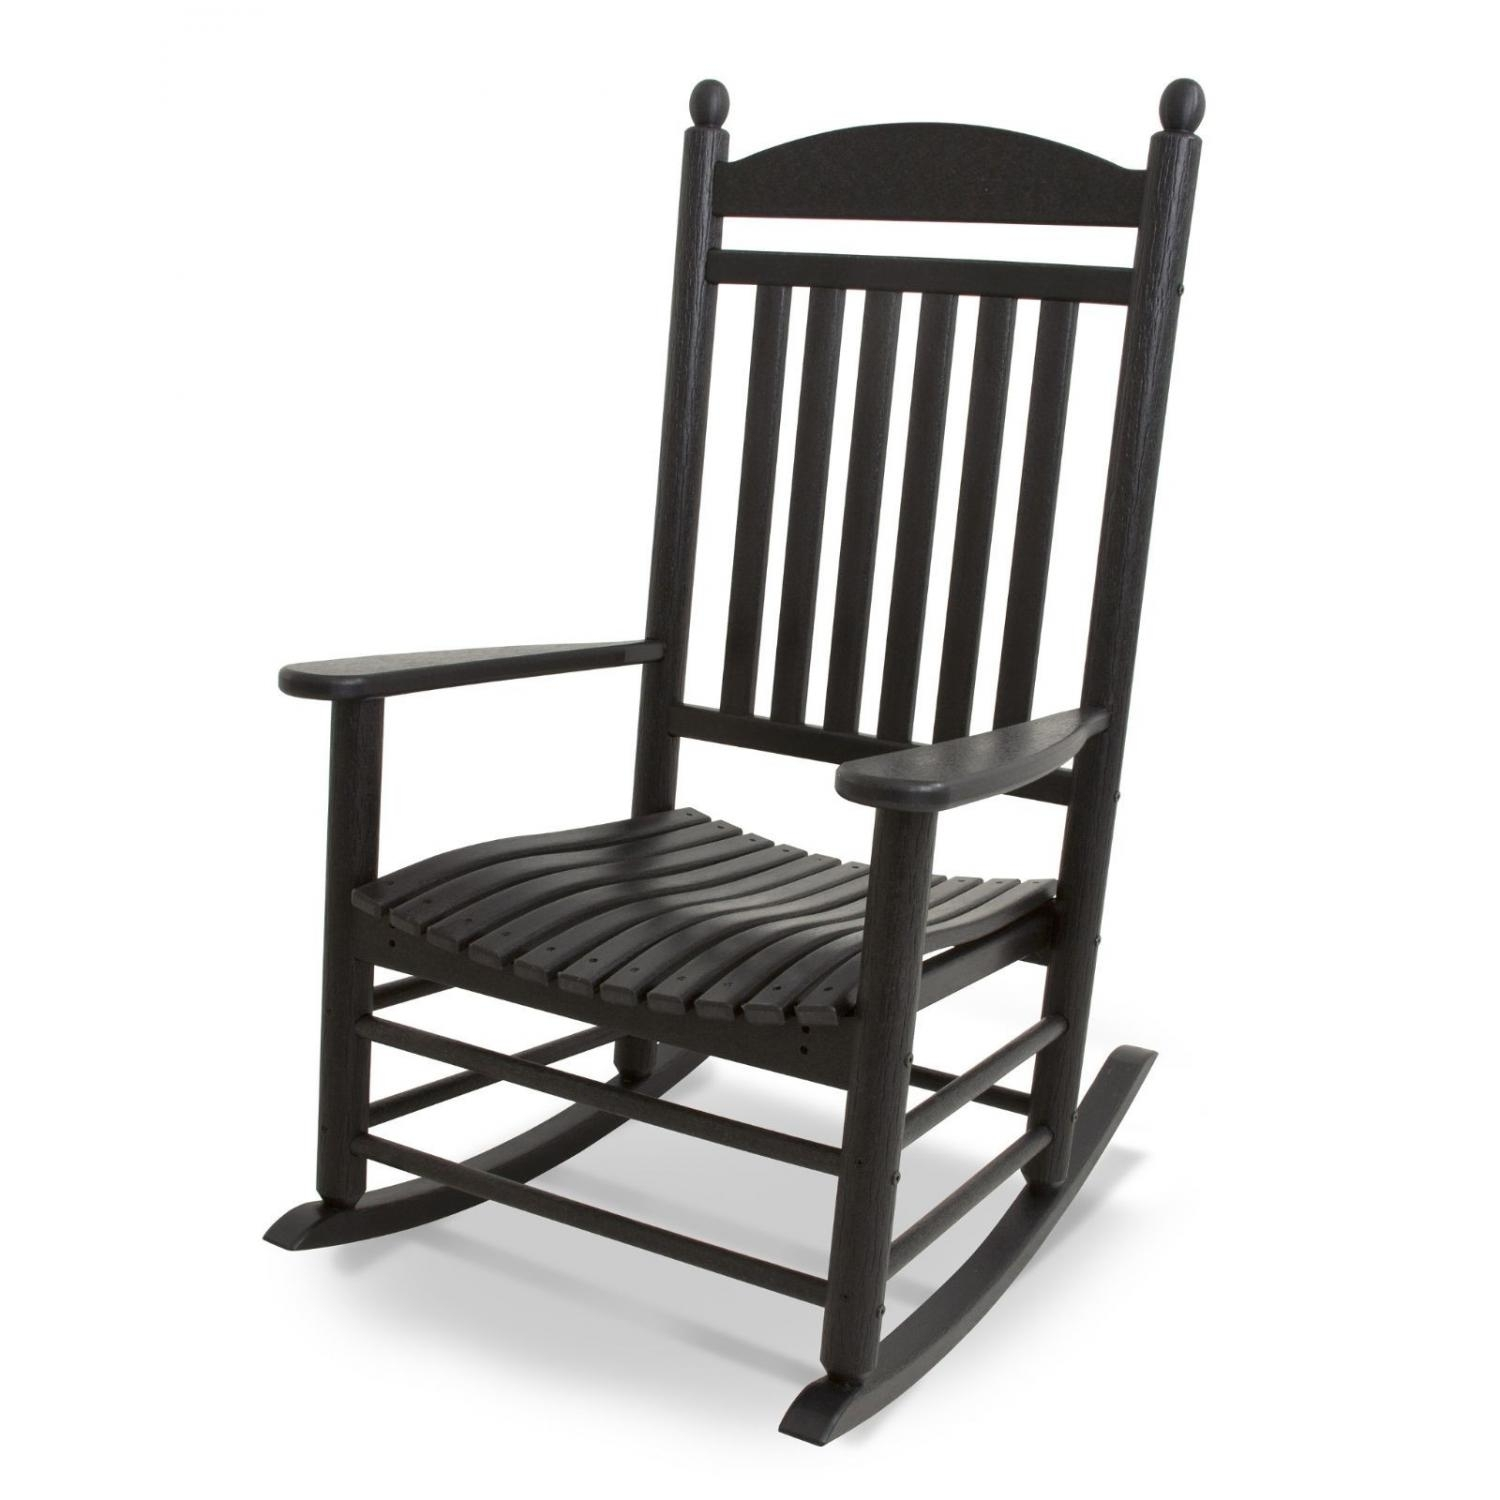 Polywood Jefferson Recycled Plastic Wood Patio Rocking Chair – Black Intended For Wooden Patio Rocking Chairs (#12 of 15)